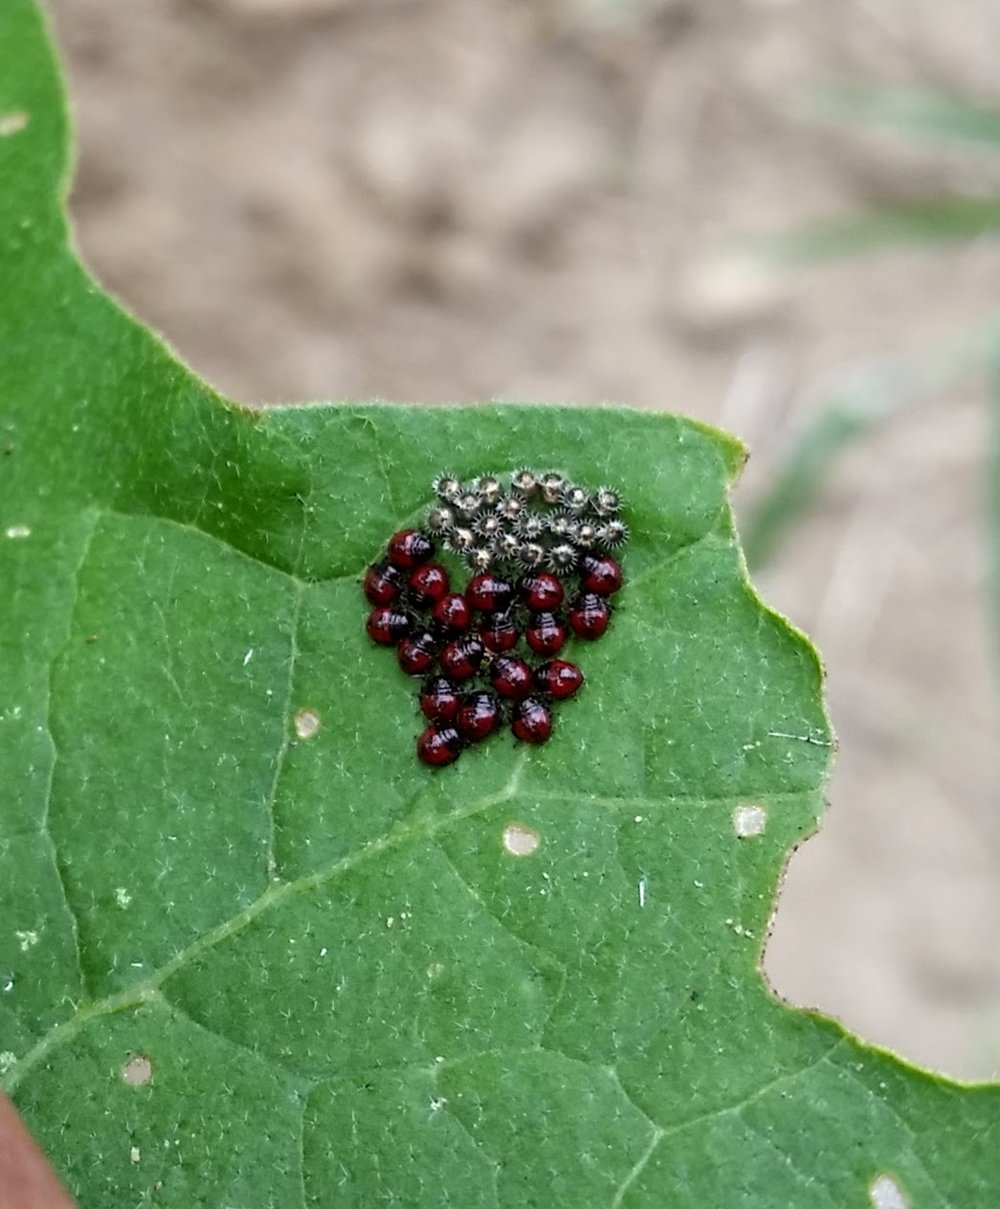 Egg mass and hatched first instar nymphs of  Podisus maculiventris , the spined soldier bug on eggplant.